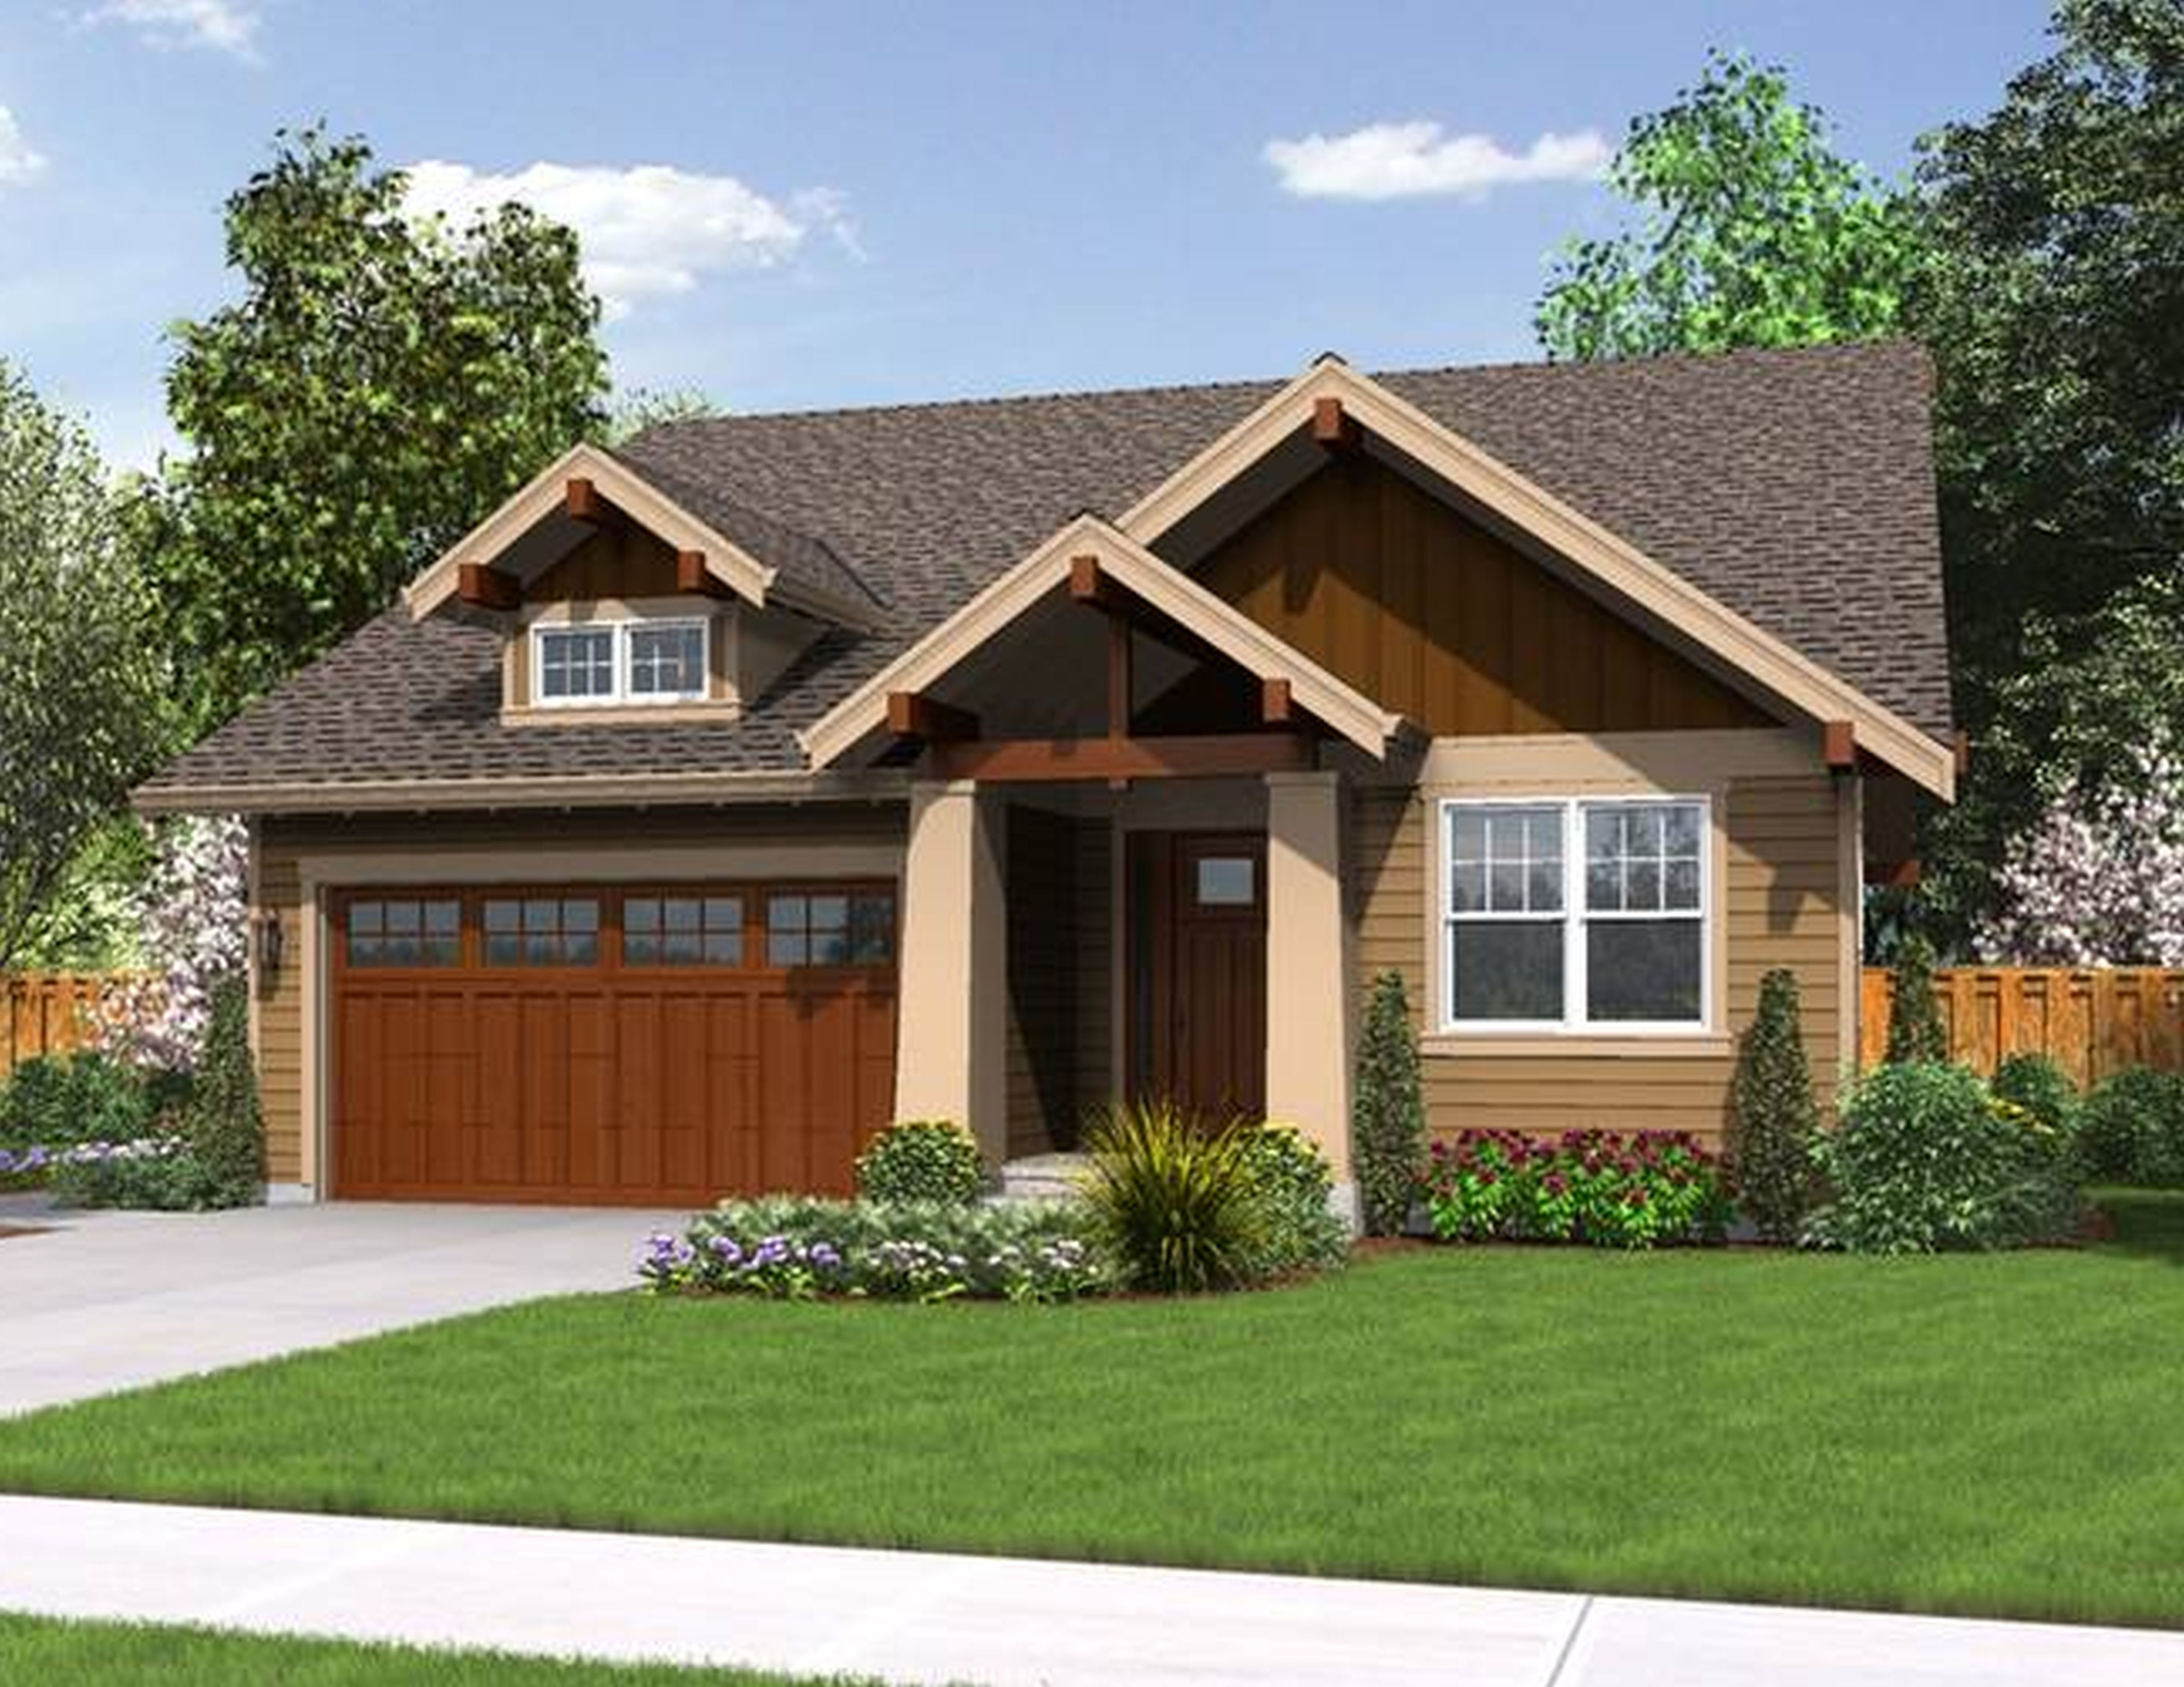 25 more 3 bedroom floor plans architecture amp design 1000 2015 small craftsman house how to layout three bed 2015 small craftsman house plans 2015 small - Craftsman Home 2015